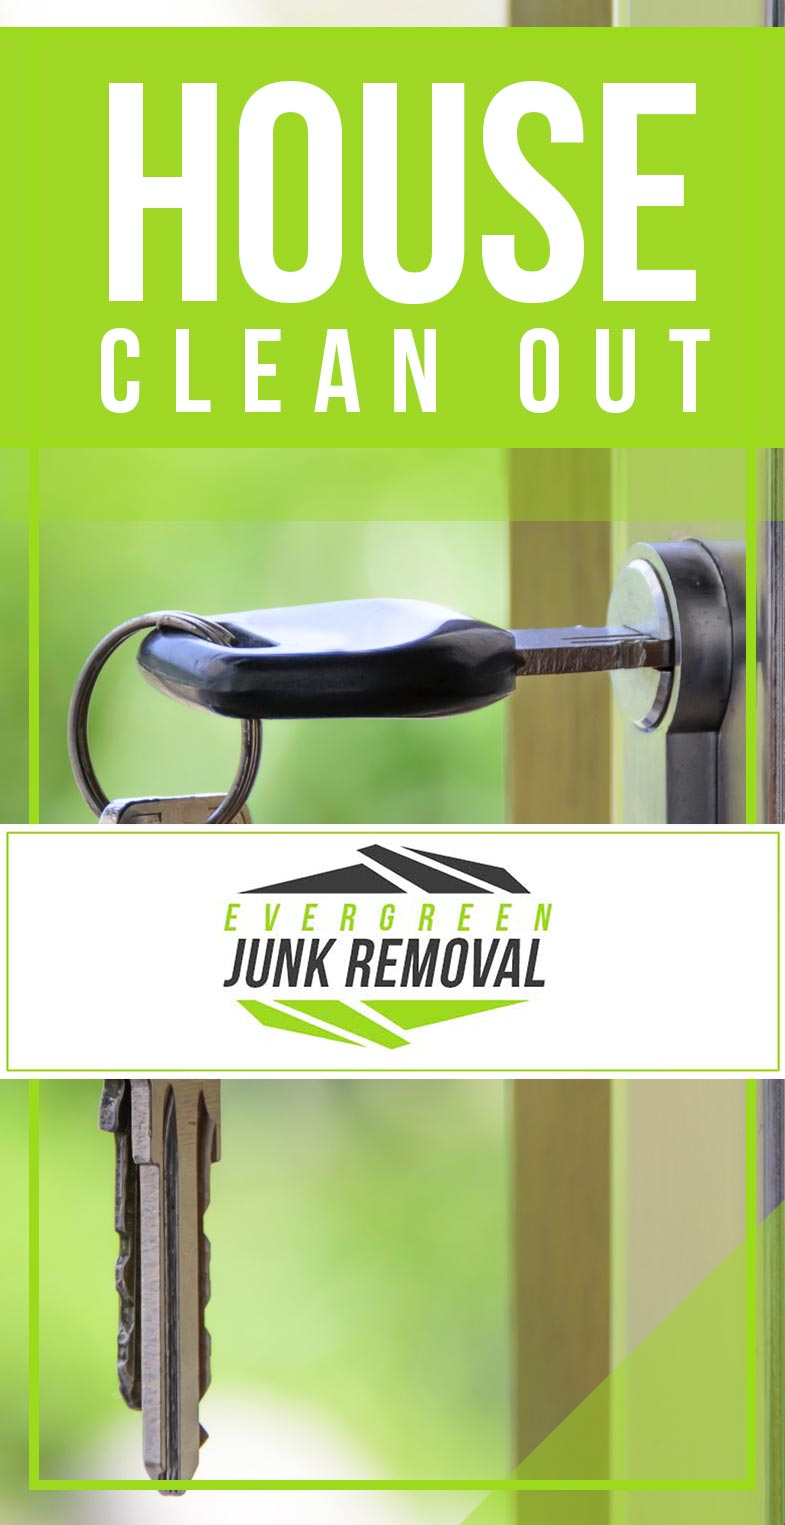 Junk Removal Glen Ridge House Clean Out